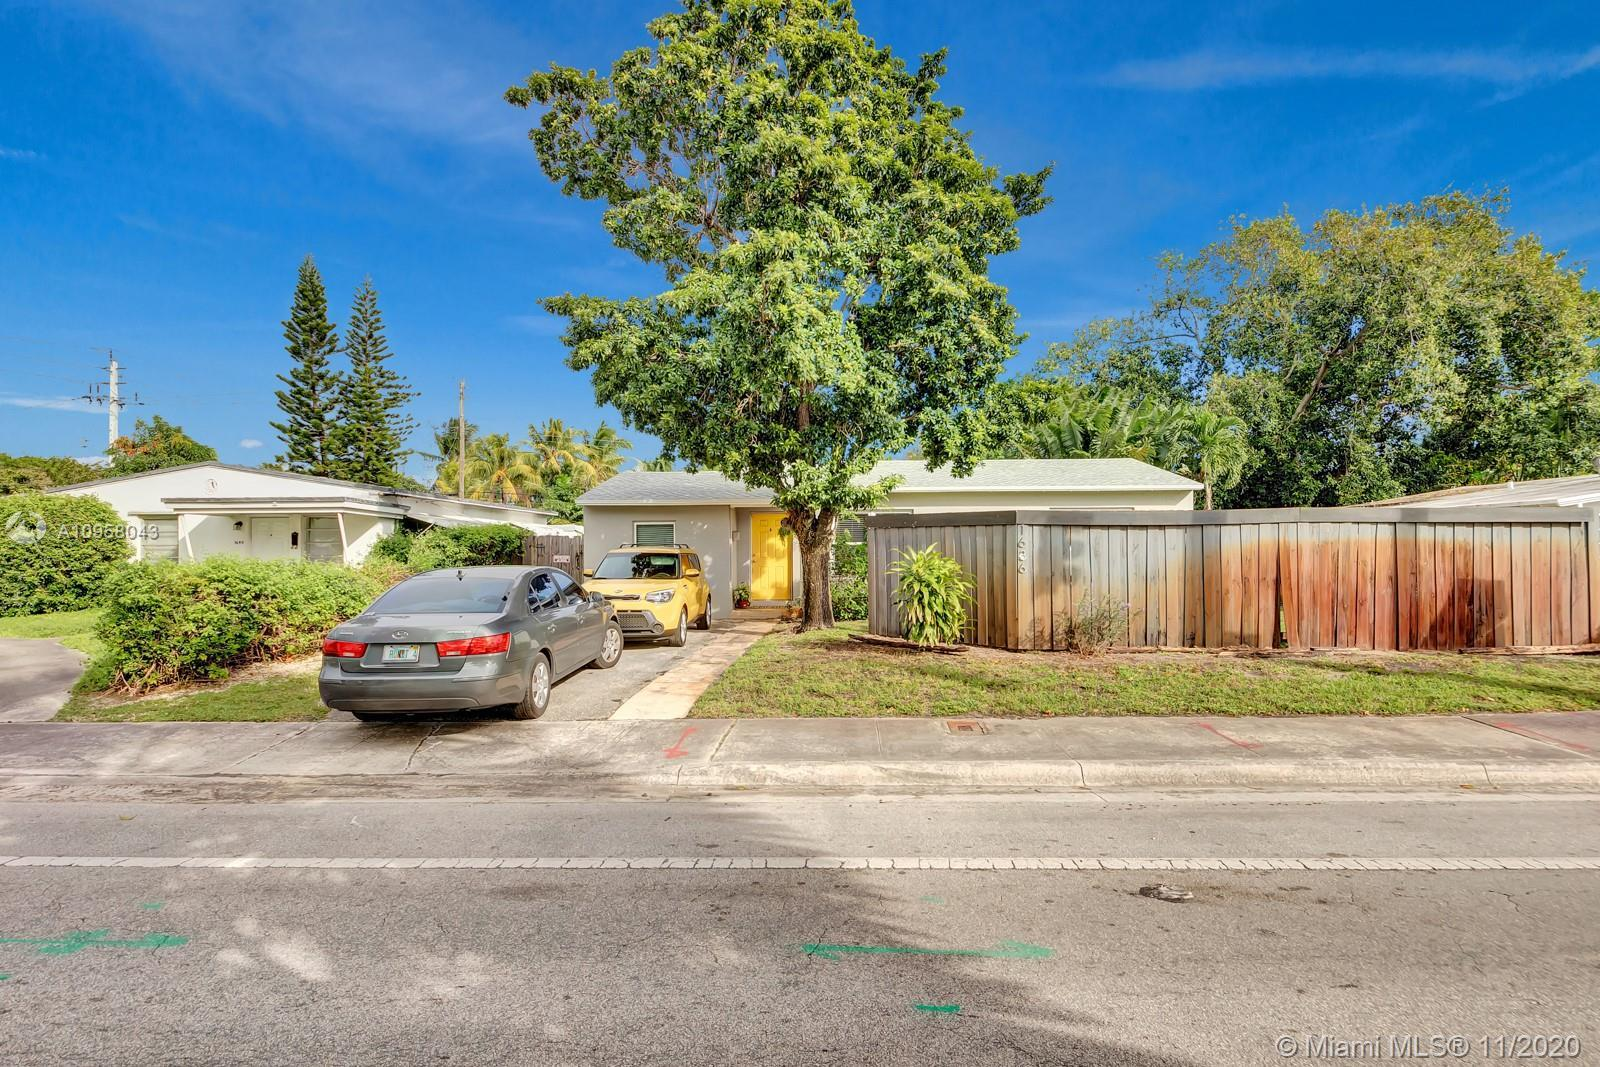 UPDATED POINSETTIA HEIGHTS HOME HAS AN NEW ROOF, EAT IN KITCHEN WITH GRANITE COUNTER TOPS AND STAINL